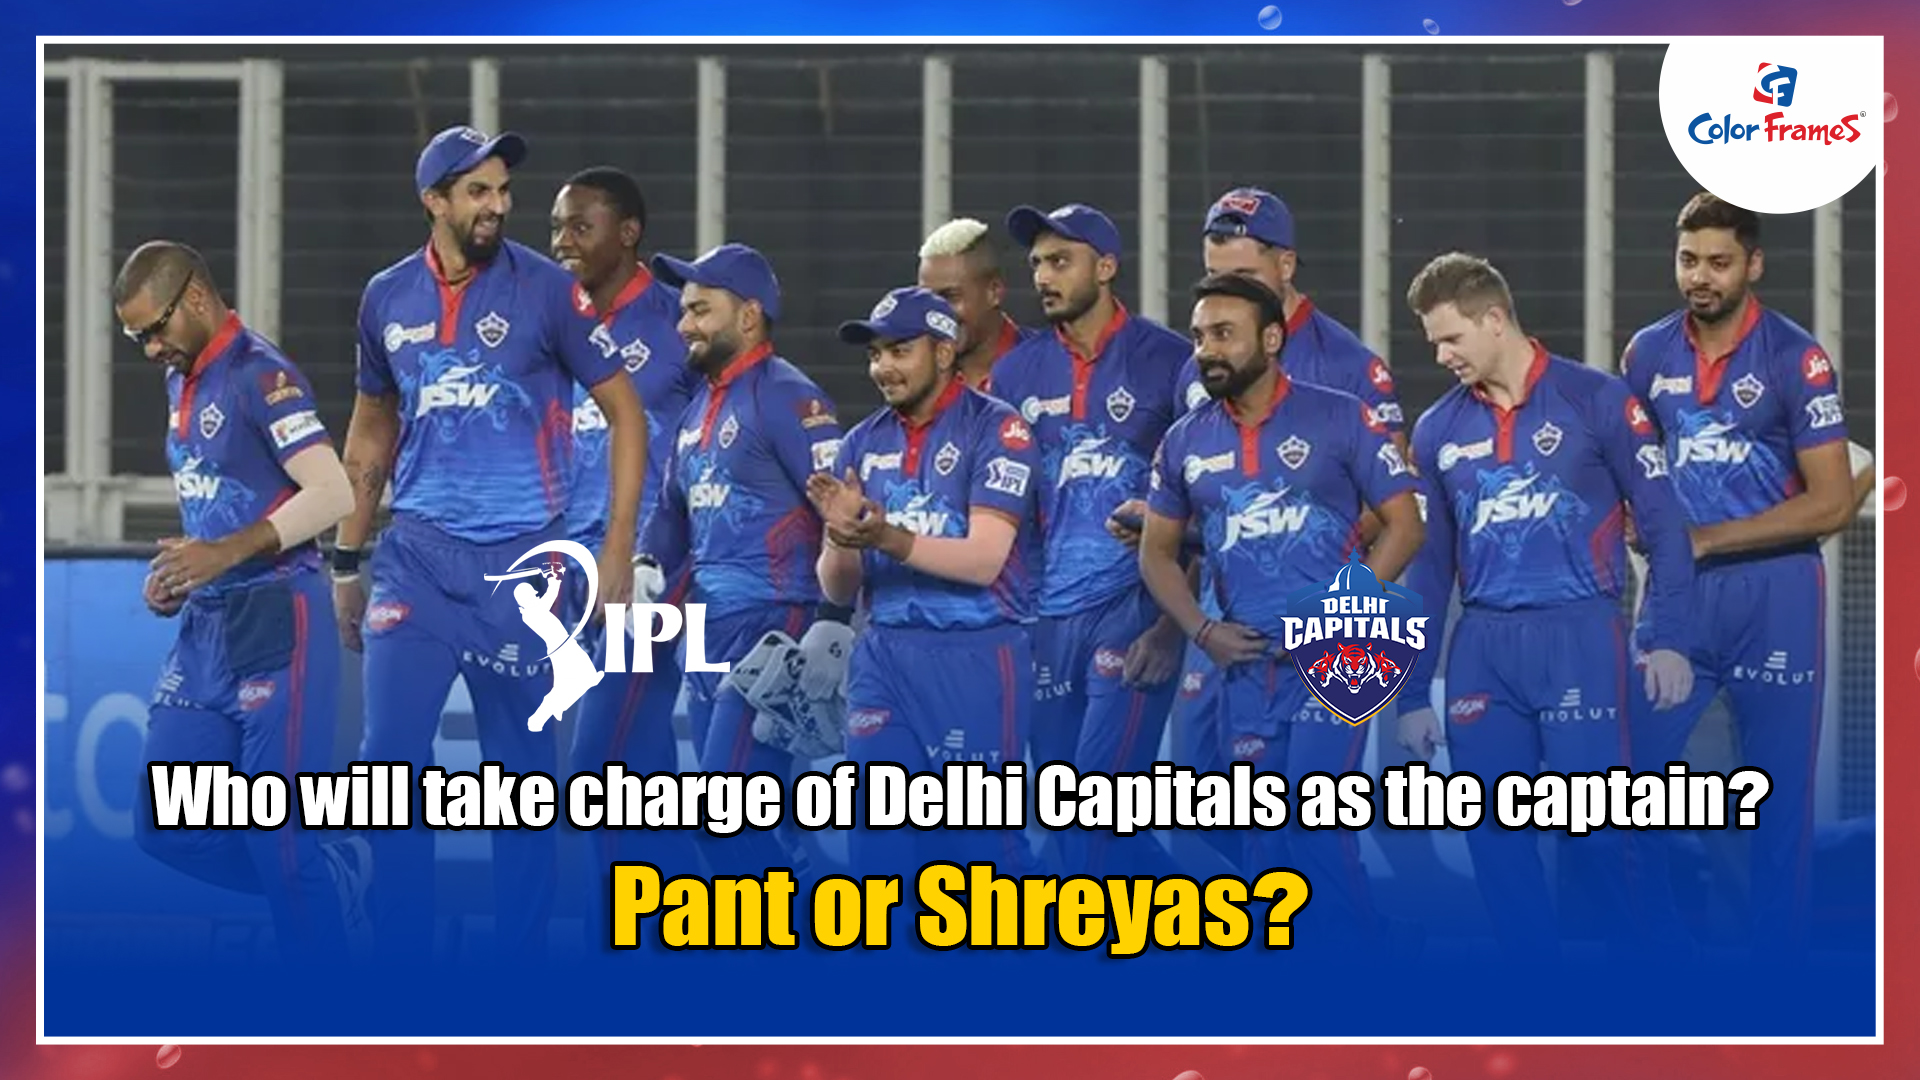 Who will take charge of Delhi Capitals as the captain? Pant or Shreyas?